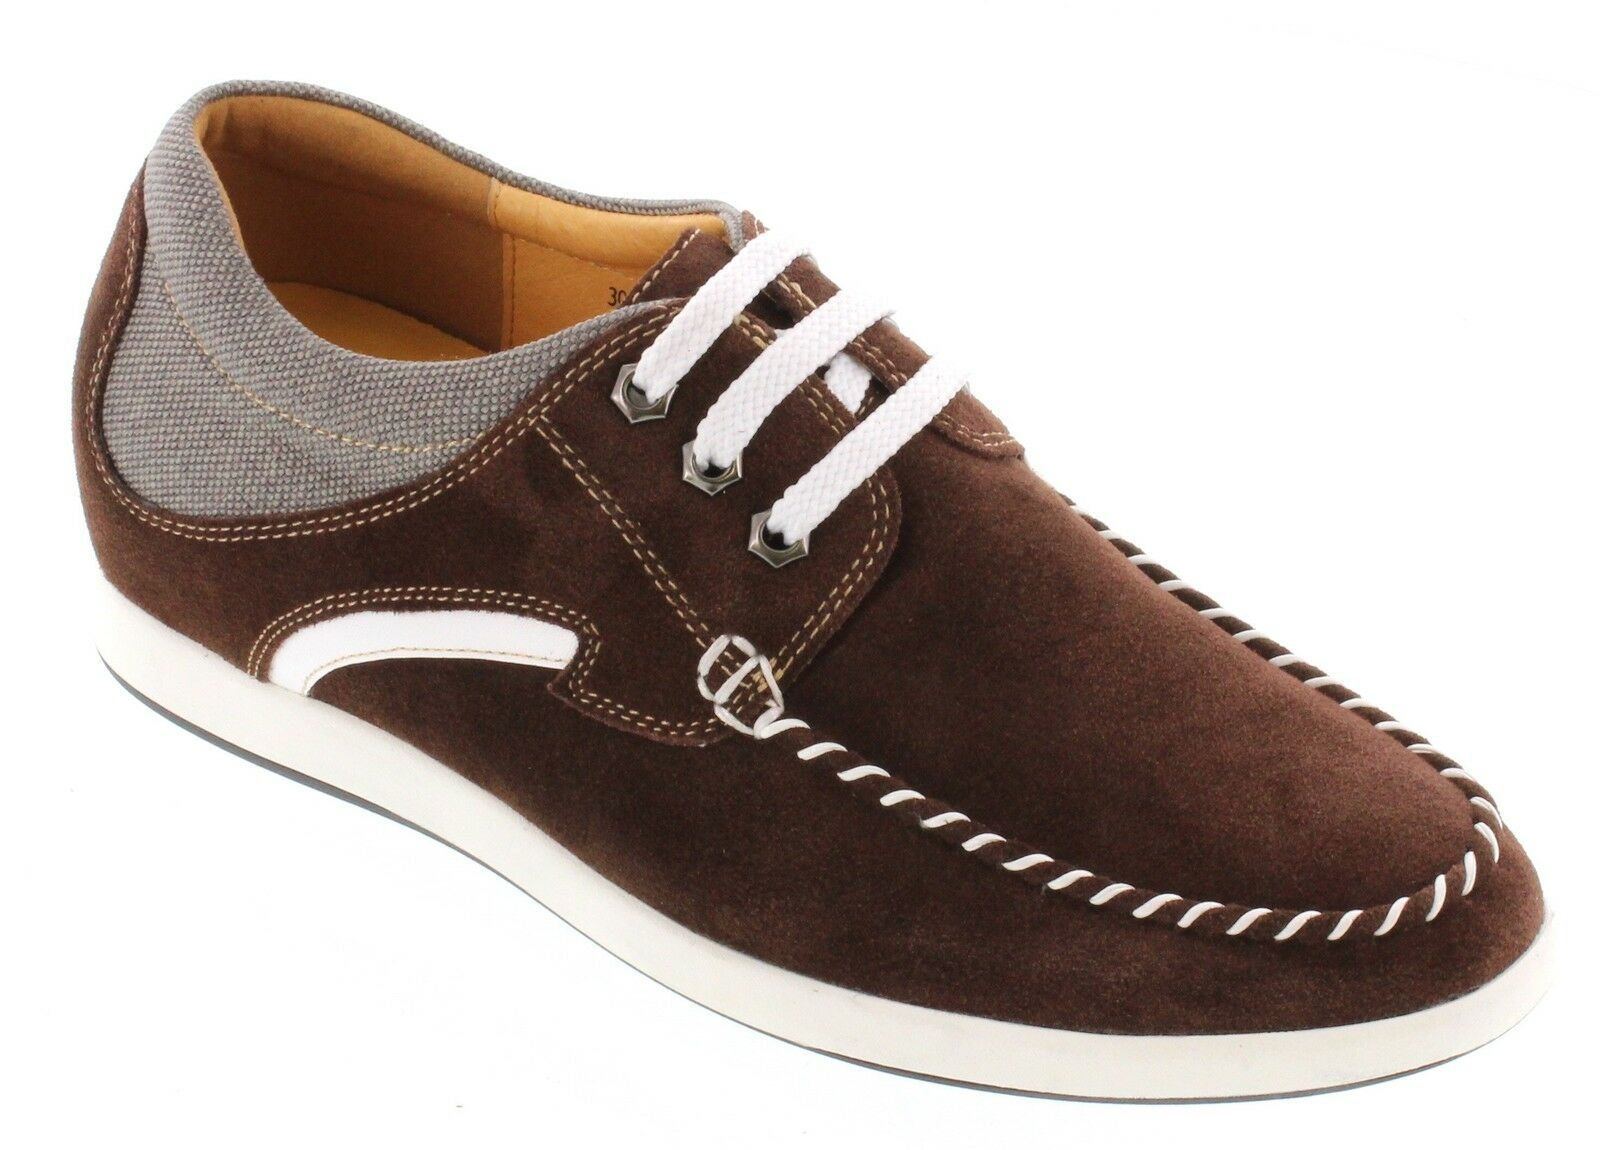 TOTO D305291 - 2.4 Inches Elevator Height Increase Dark Brown Casual shoes